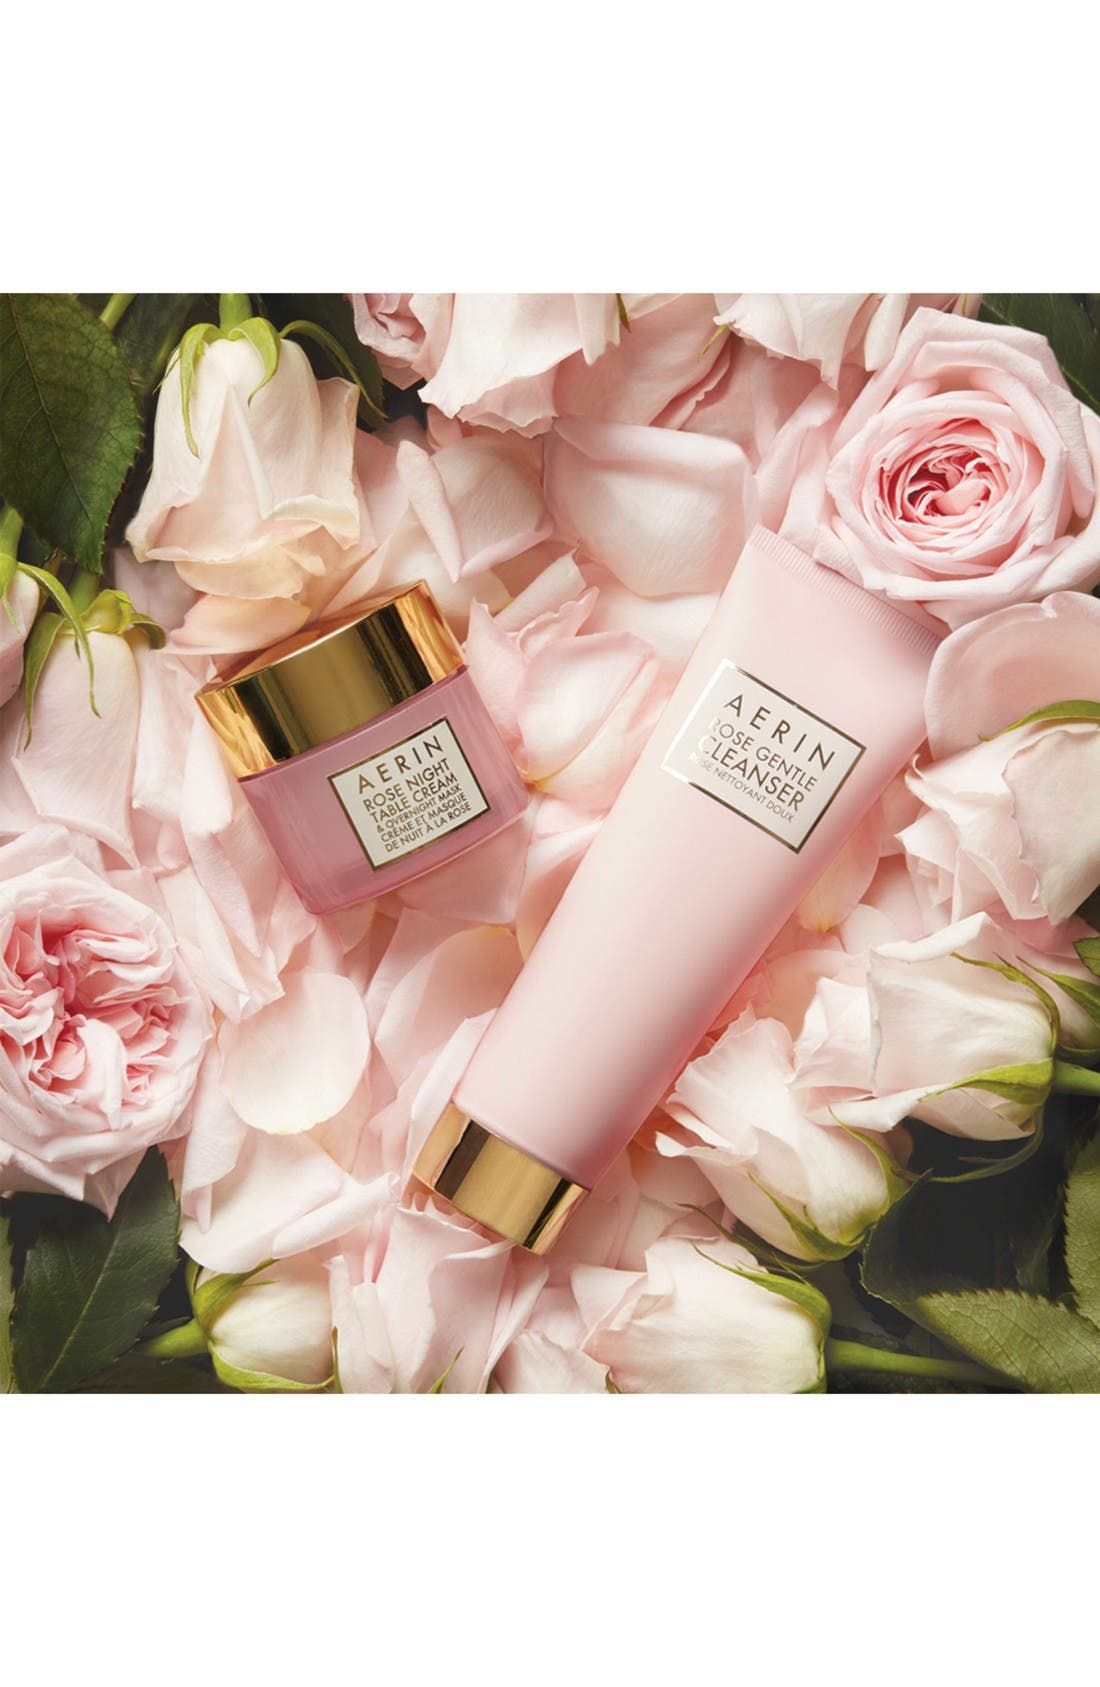 Alternate Image 3  - AERIN Beauty 'Rose' Night Table Cream & Overnight Mask